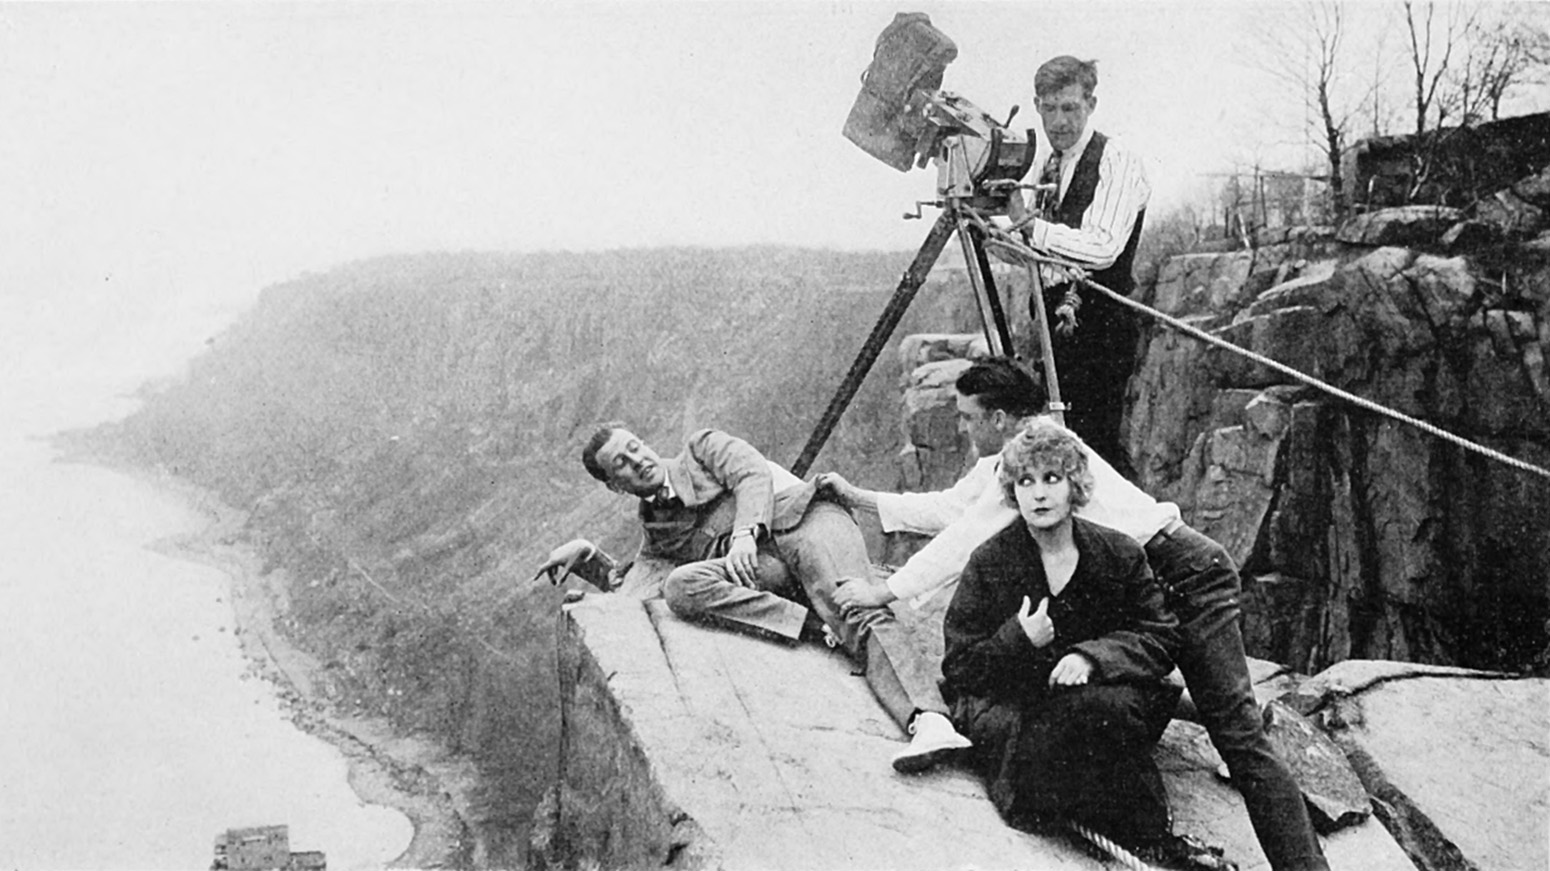 Filming The Perils of Pauline in the Jersey Palisades.